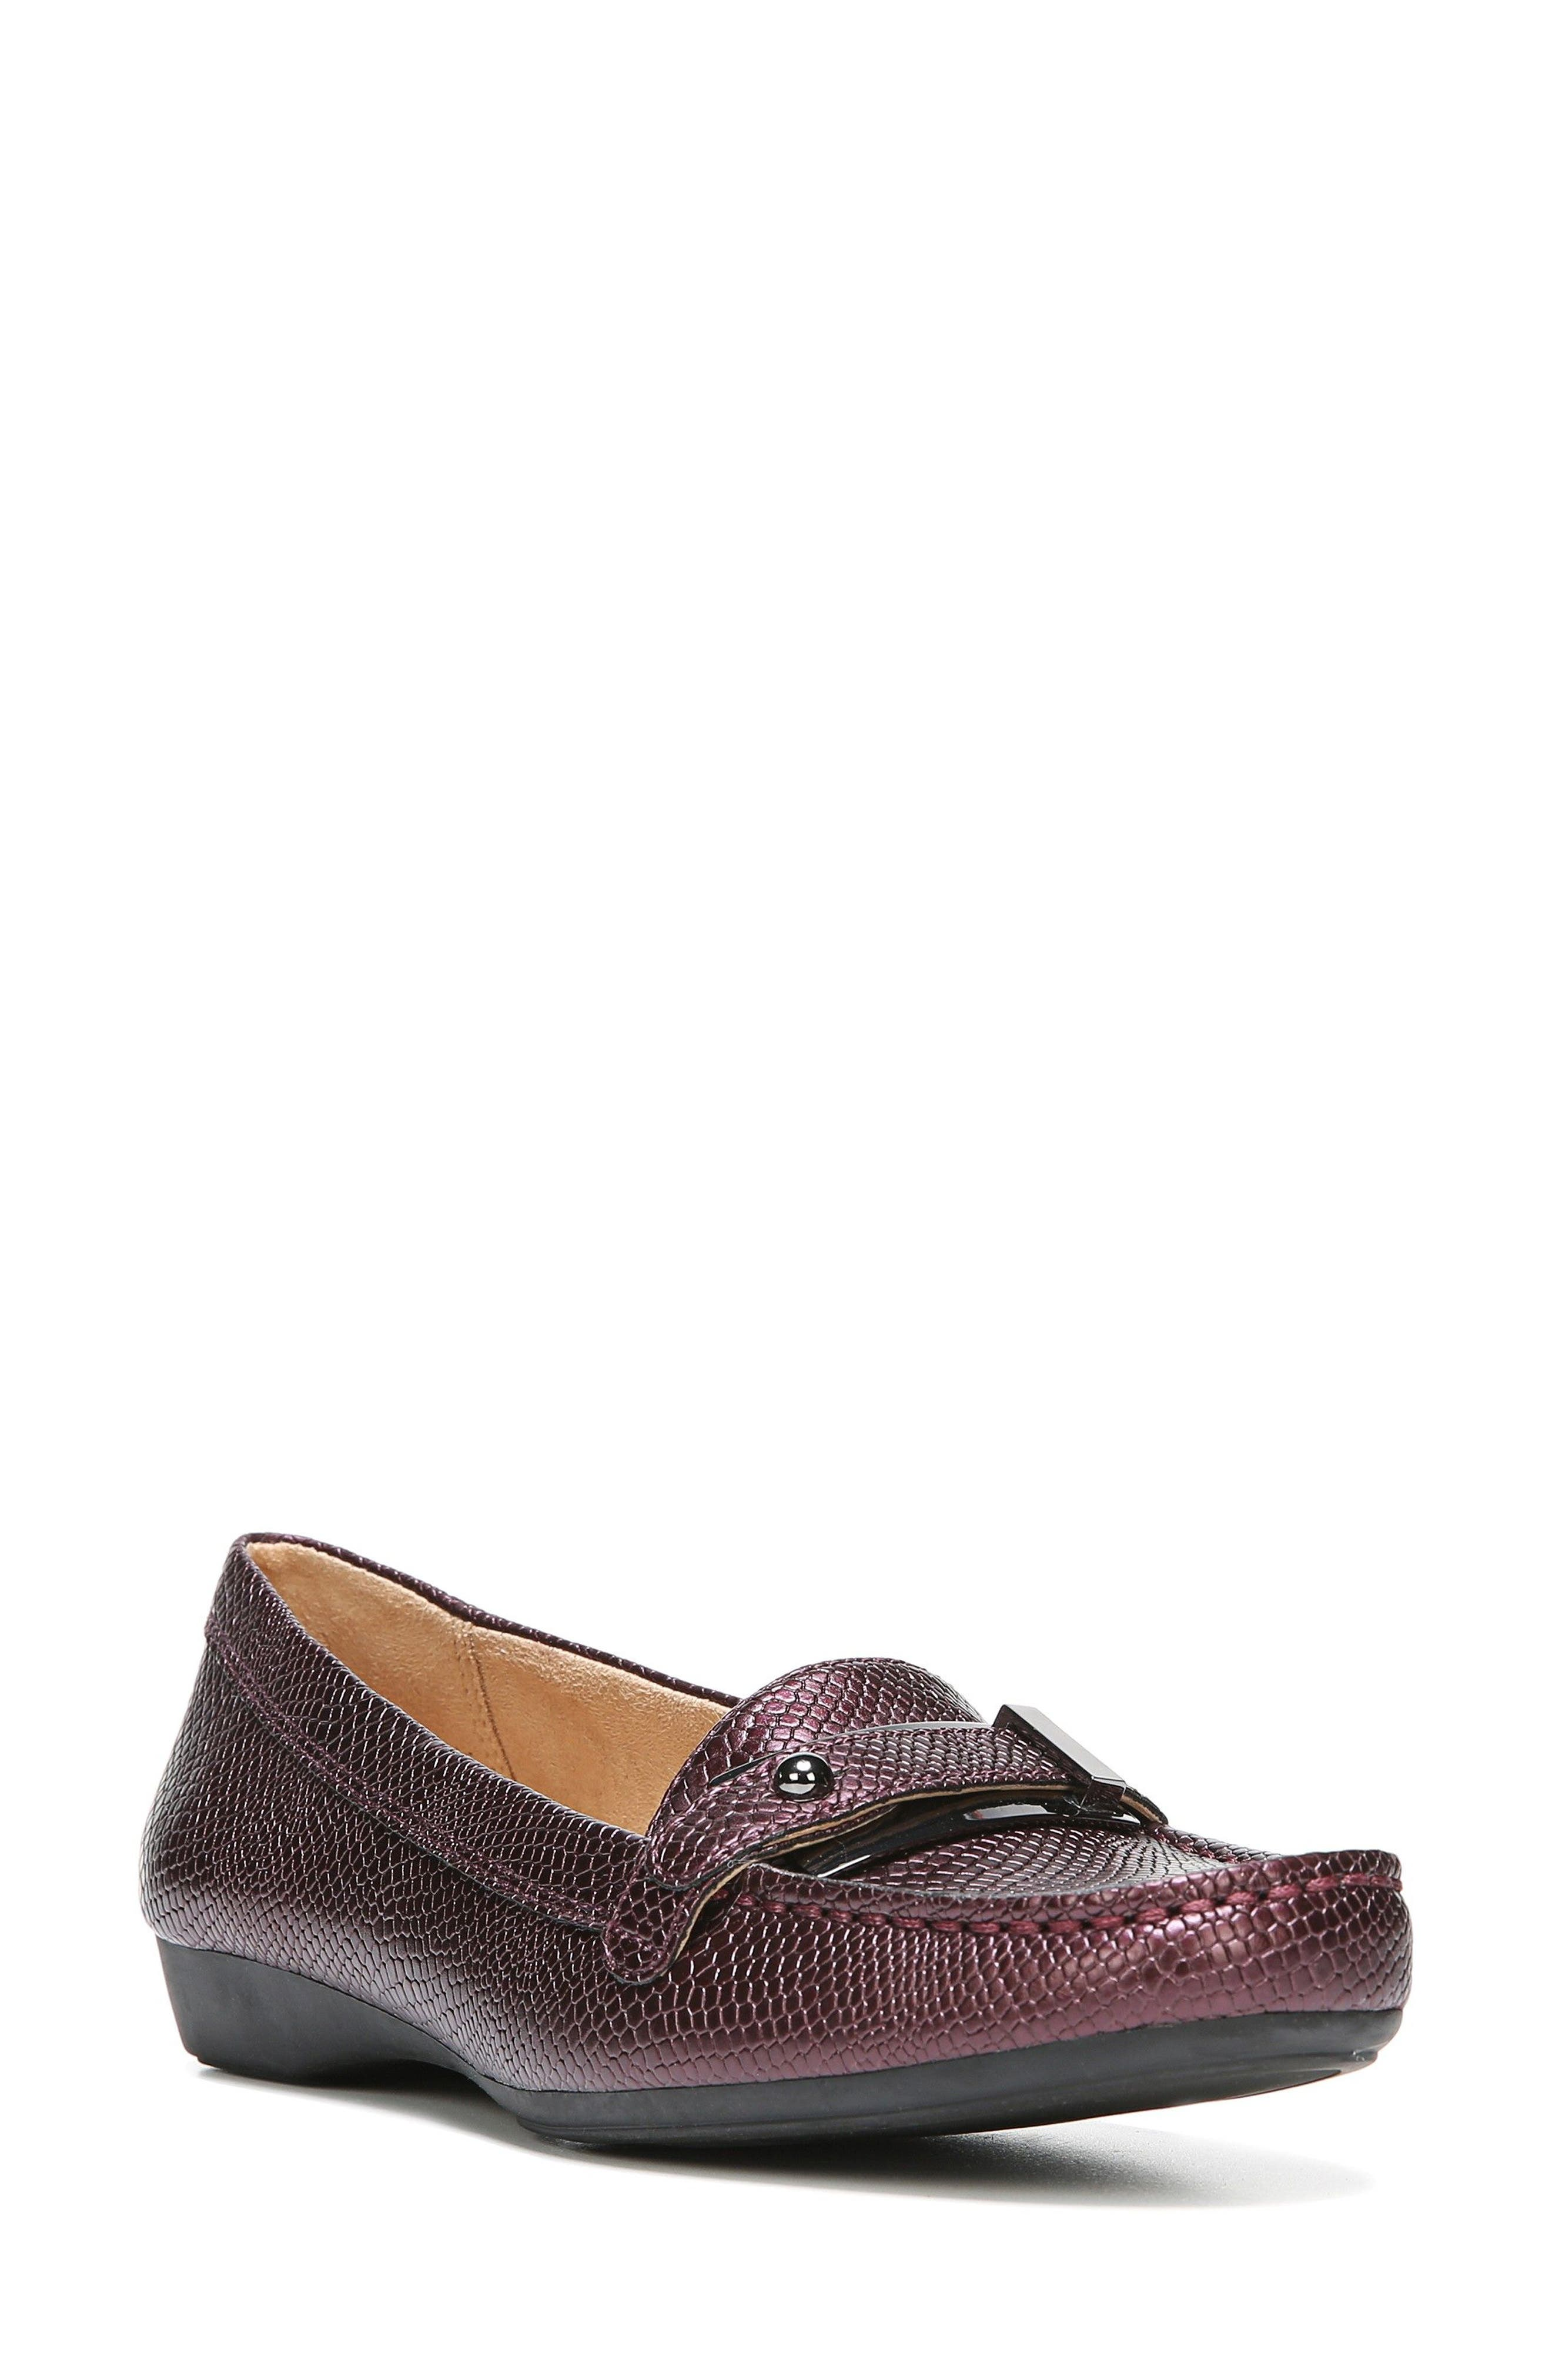 Naturalizer 'Gisella' Loafer (Women)